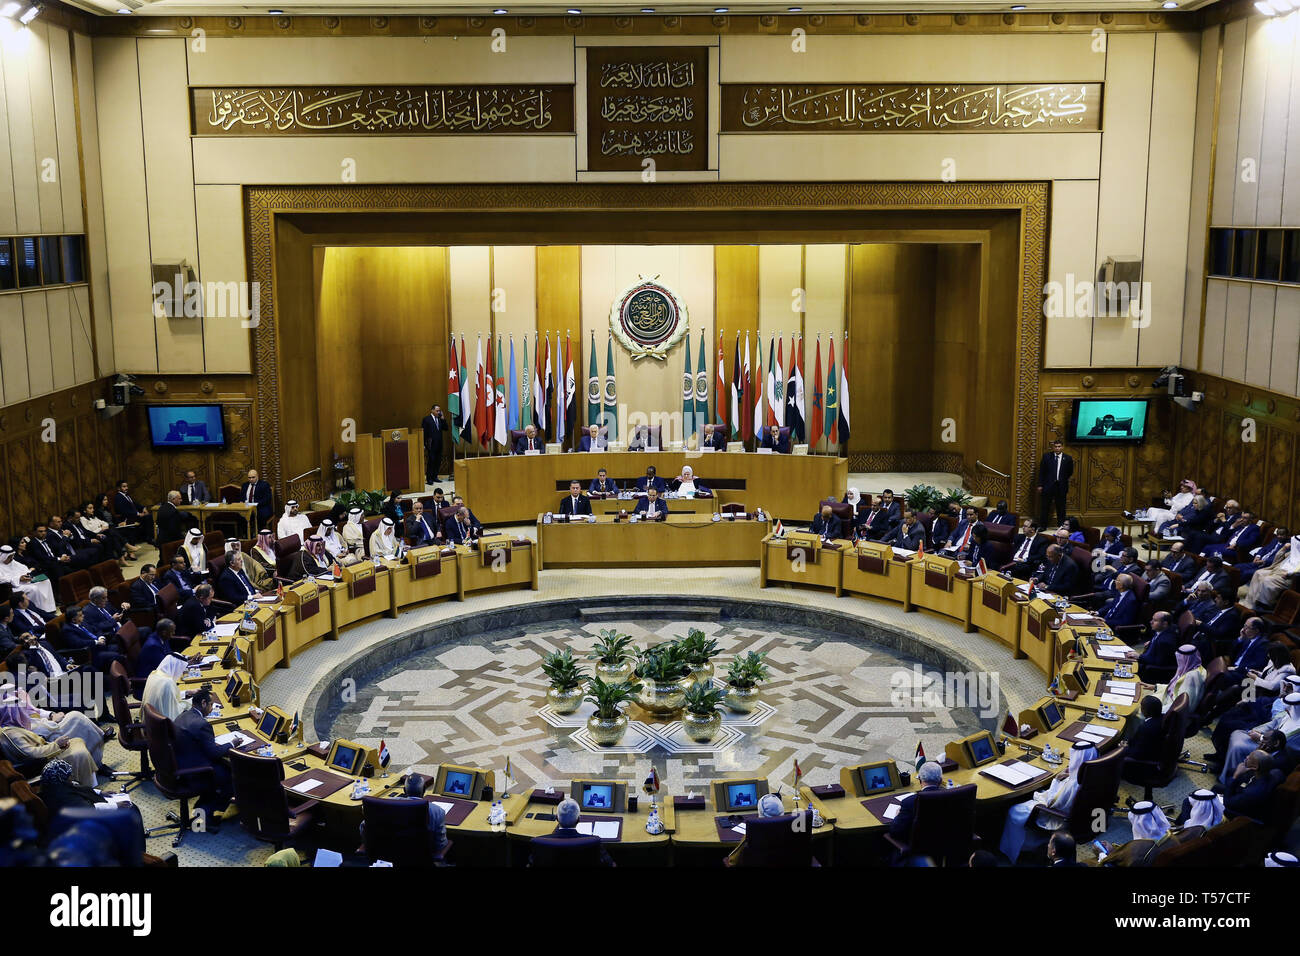 Beijing, Egypt. 21st Apr, 2019. Representatives attend an emergency meeting of Arab foreign ministers at the Arab League headquarters in Cairo, Egypt, April 21, 2019. Arab foreign ministers said on Sunday that their states will not accept any deal related to the Palestinian cause that does not conform with the international references. Credit: Ahmed Gomaa/Xinhua/Alamy Live News - Stock Image